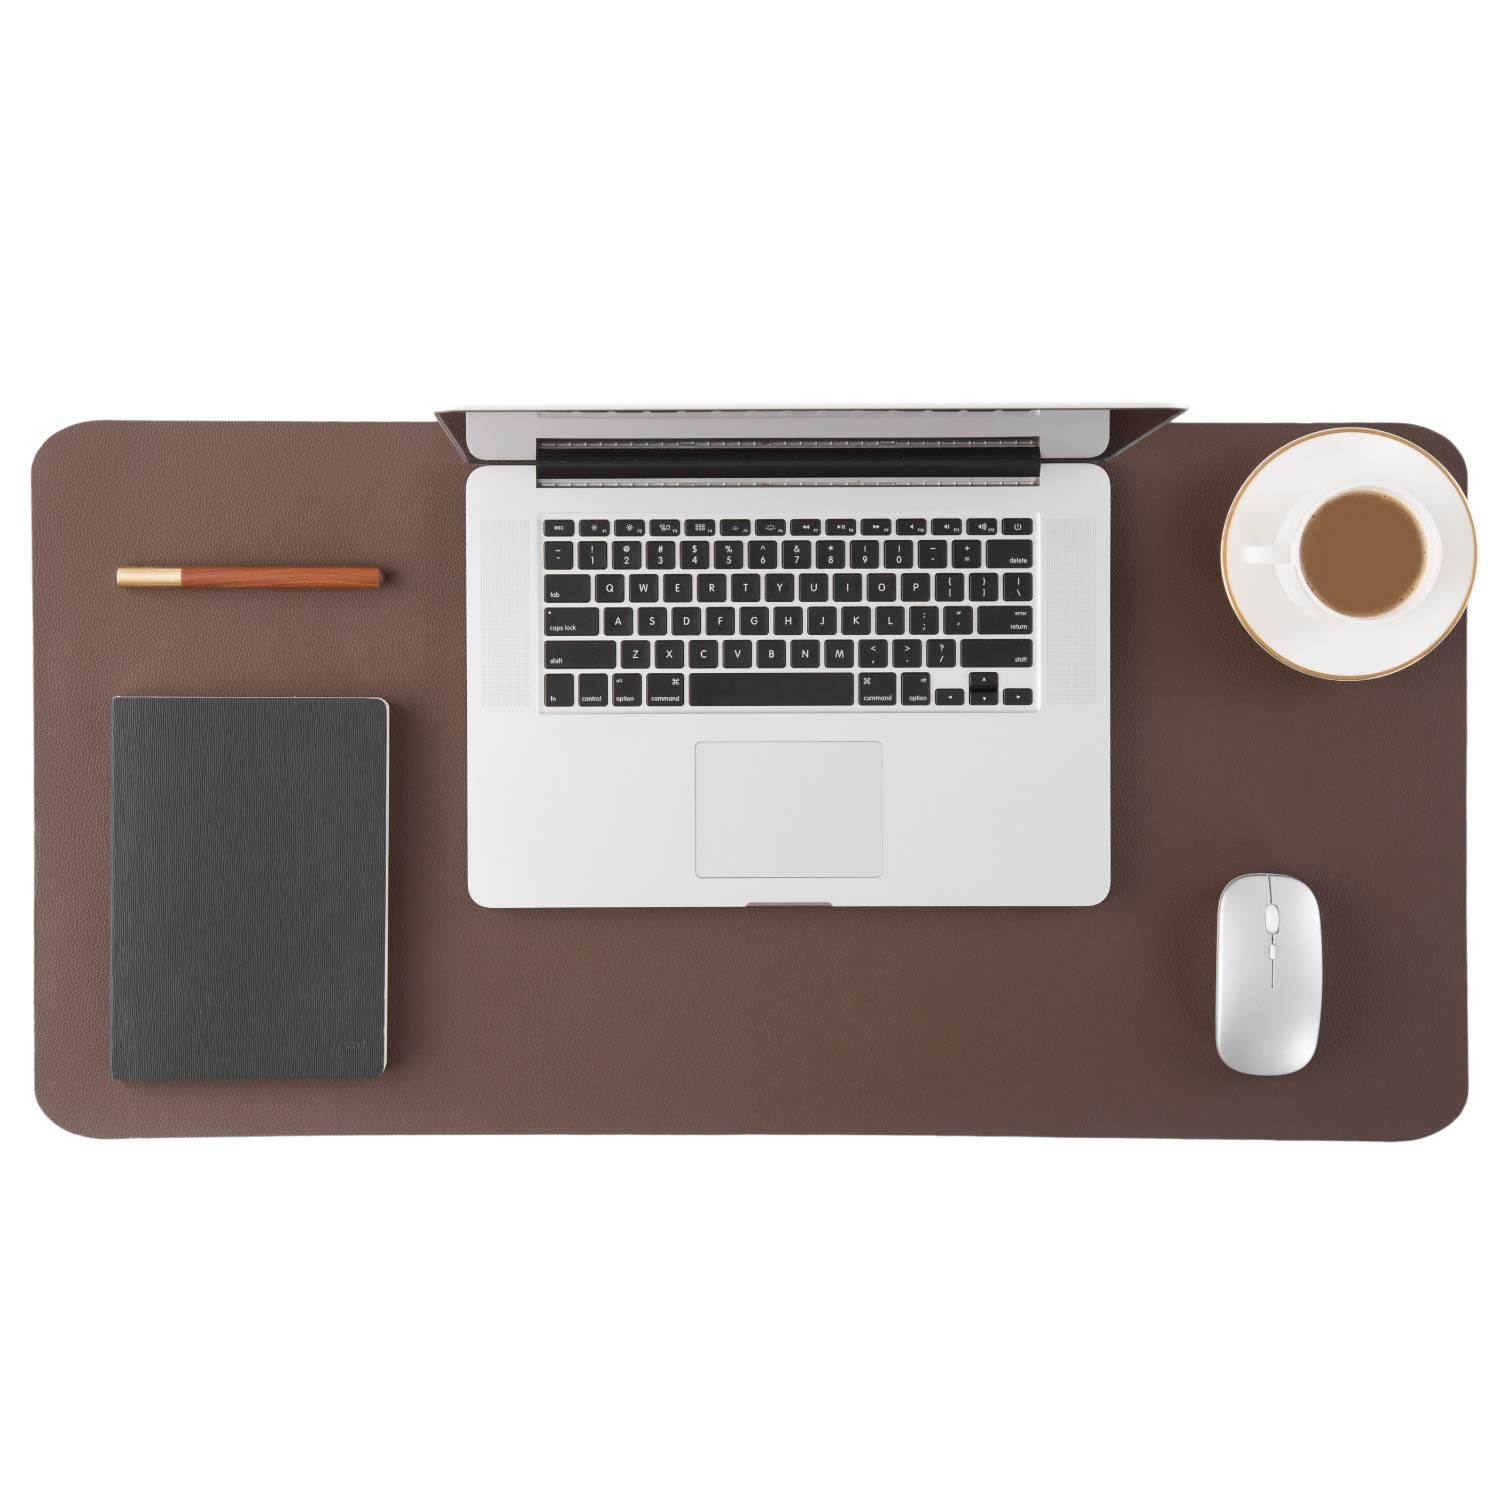 Homesure Genuine Leather Desk Pad, Office Desk Mat Blotter on top of desks, Large Computer Desk Mat, Waterproof Non Slip Desk Pad Protector for Office and Home (Brown, 17x35 inches)